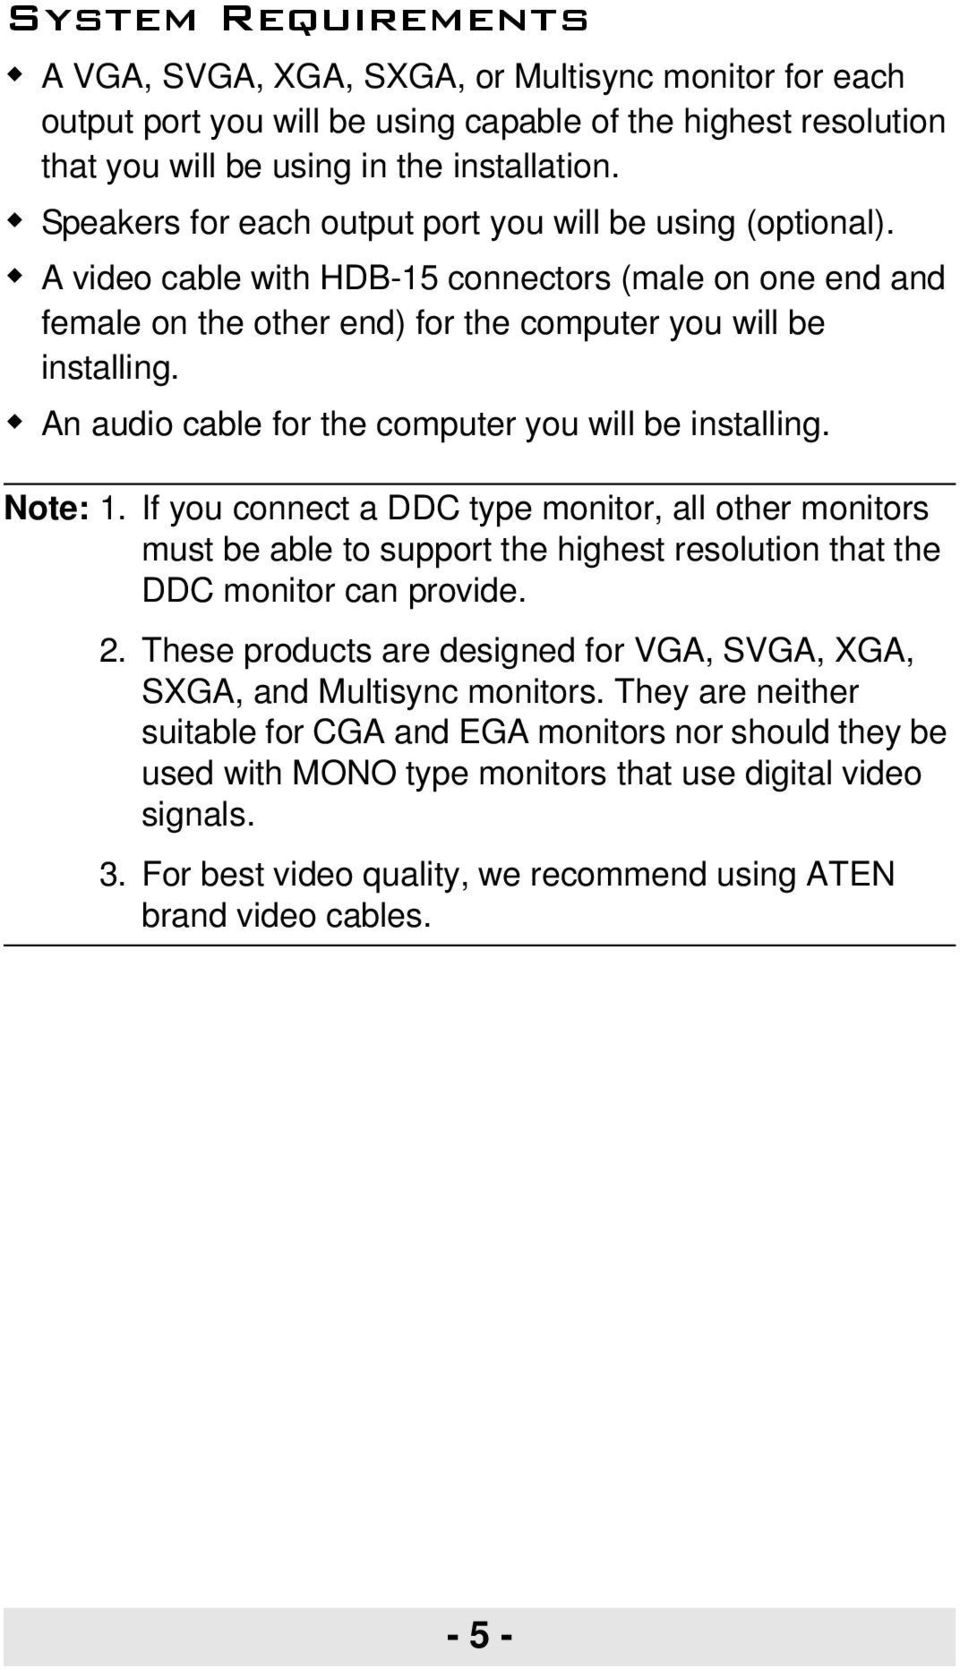 An audio cable for the computer you will be installing. Note: 1. If you connect a DDC type monitor, all other monitors must be able to support the highest resolution that the DDC monitor can provide.